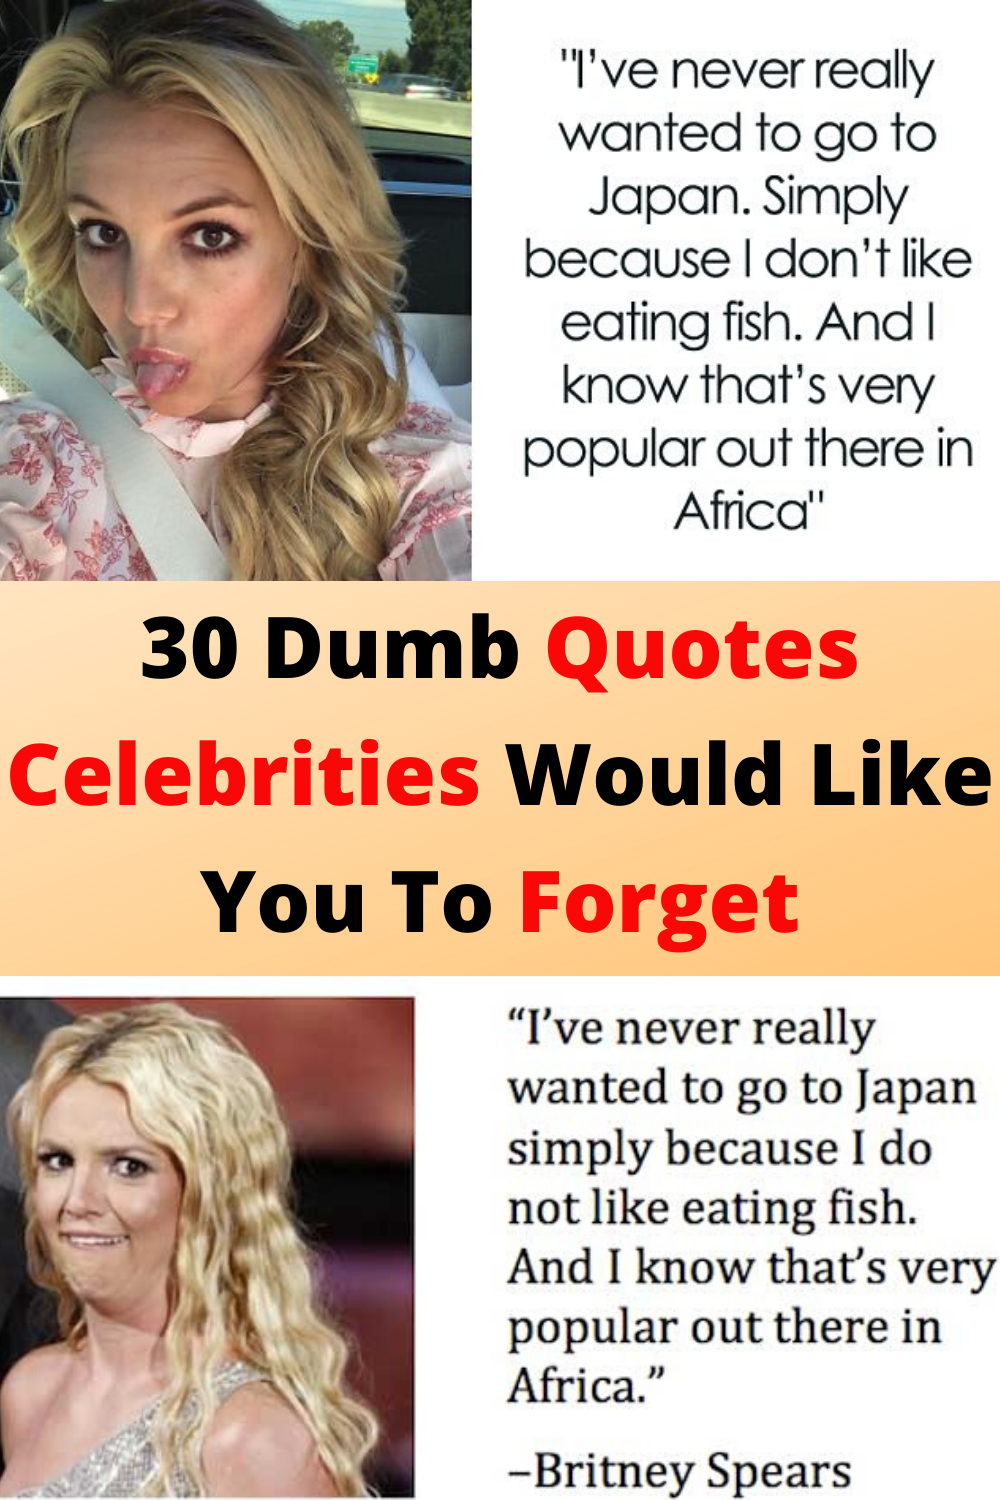 30 Dumb Quotes Celebrities Would Like You To Forget Dumb Quotes Epic Fails Funny Dumb And Dumber